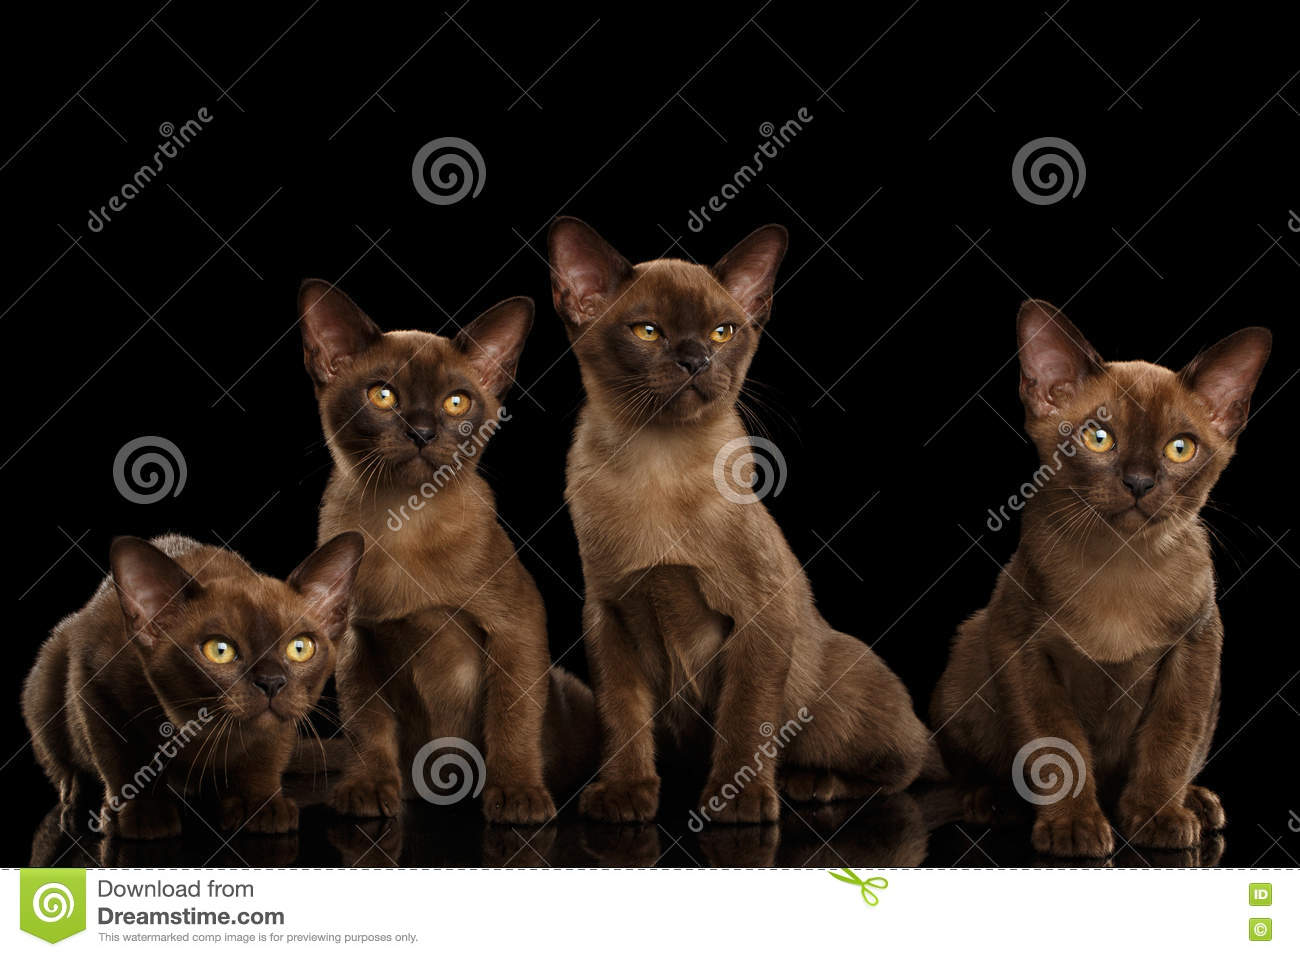 Four Cute Burma Kittens Sitting, Isolated Black Background